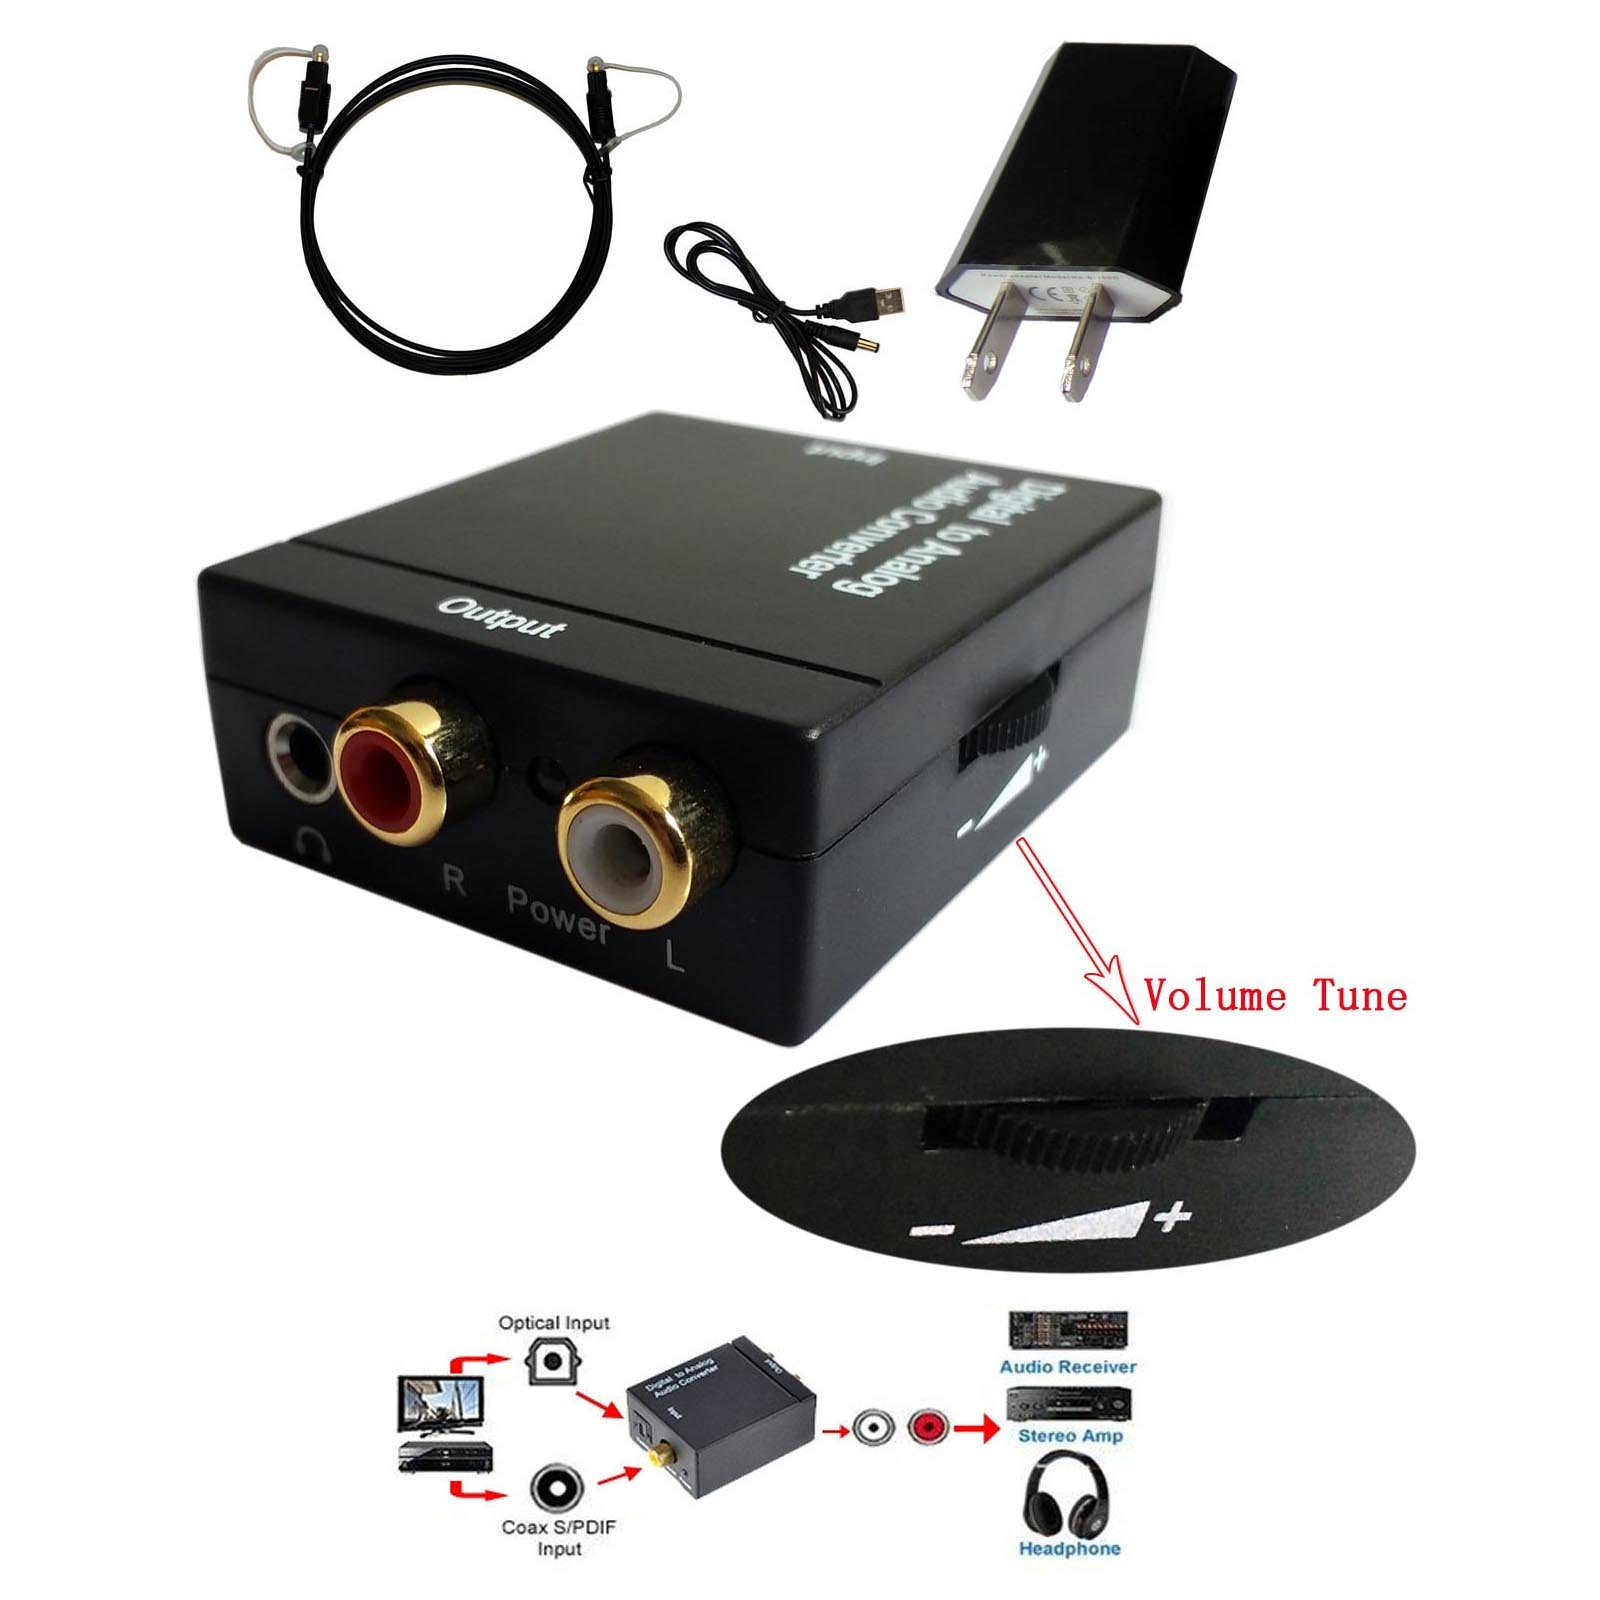 Easyday Black Digital Optical Coaxial Toslink Signal to Analog Audio Converter Adapter RCA L/R output with 3.5mm Audio Jack + Volume Control + Sampling rate + Chipset Cirrus logic